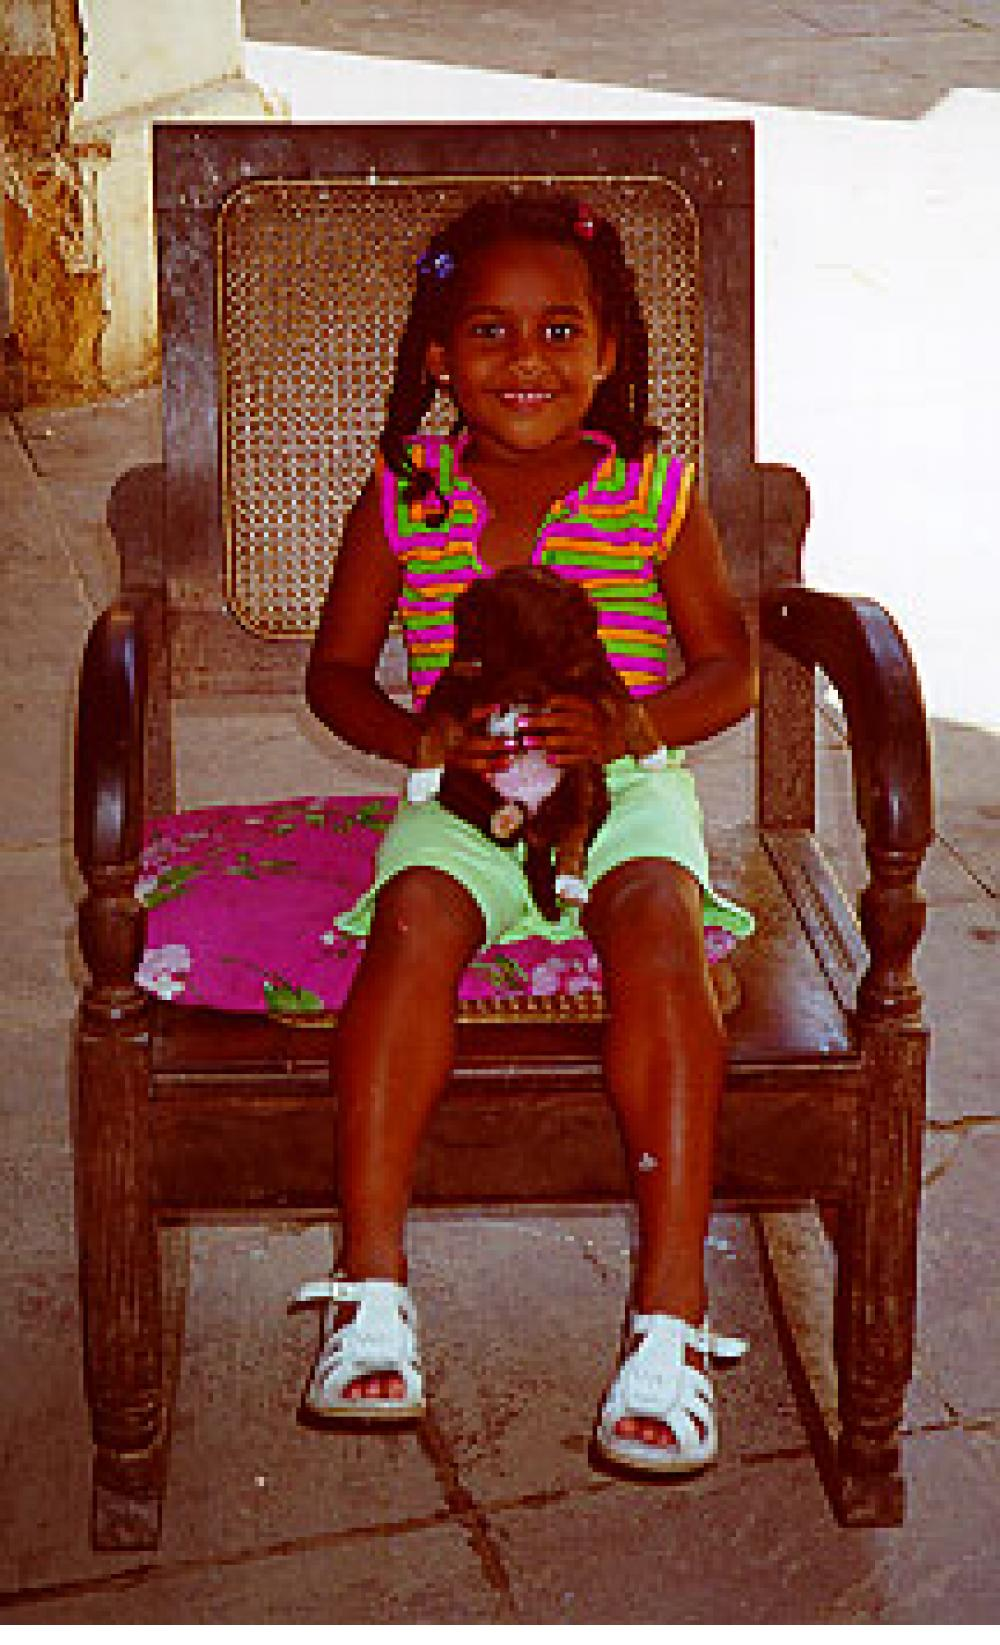 Girl with puppy. Trinidad, Cuba.